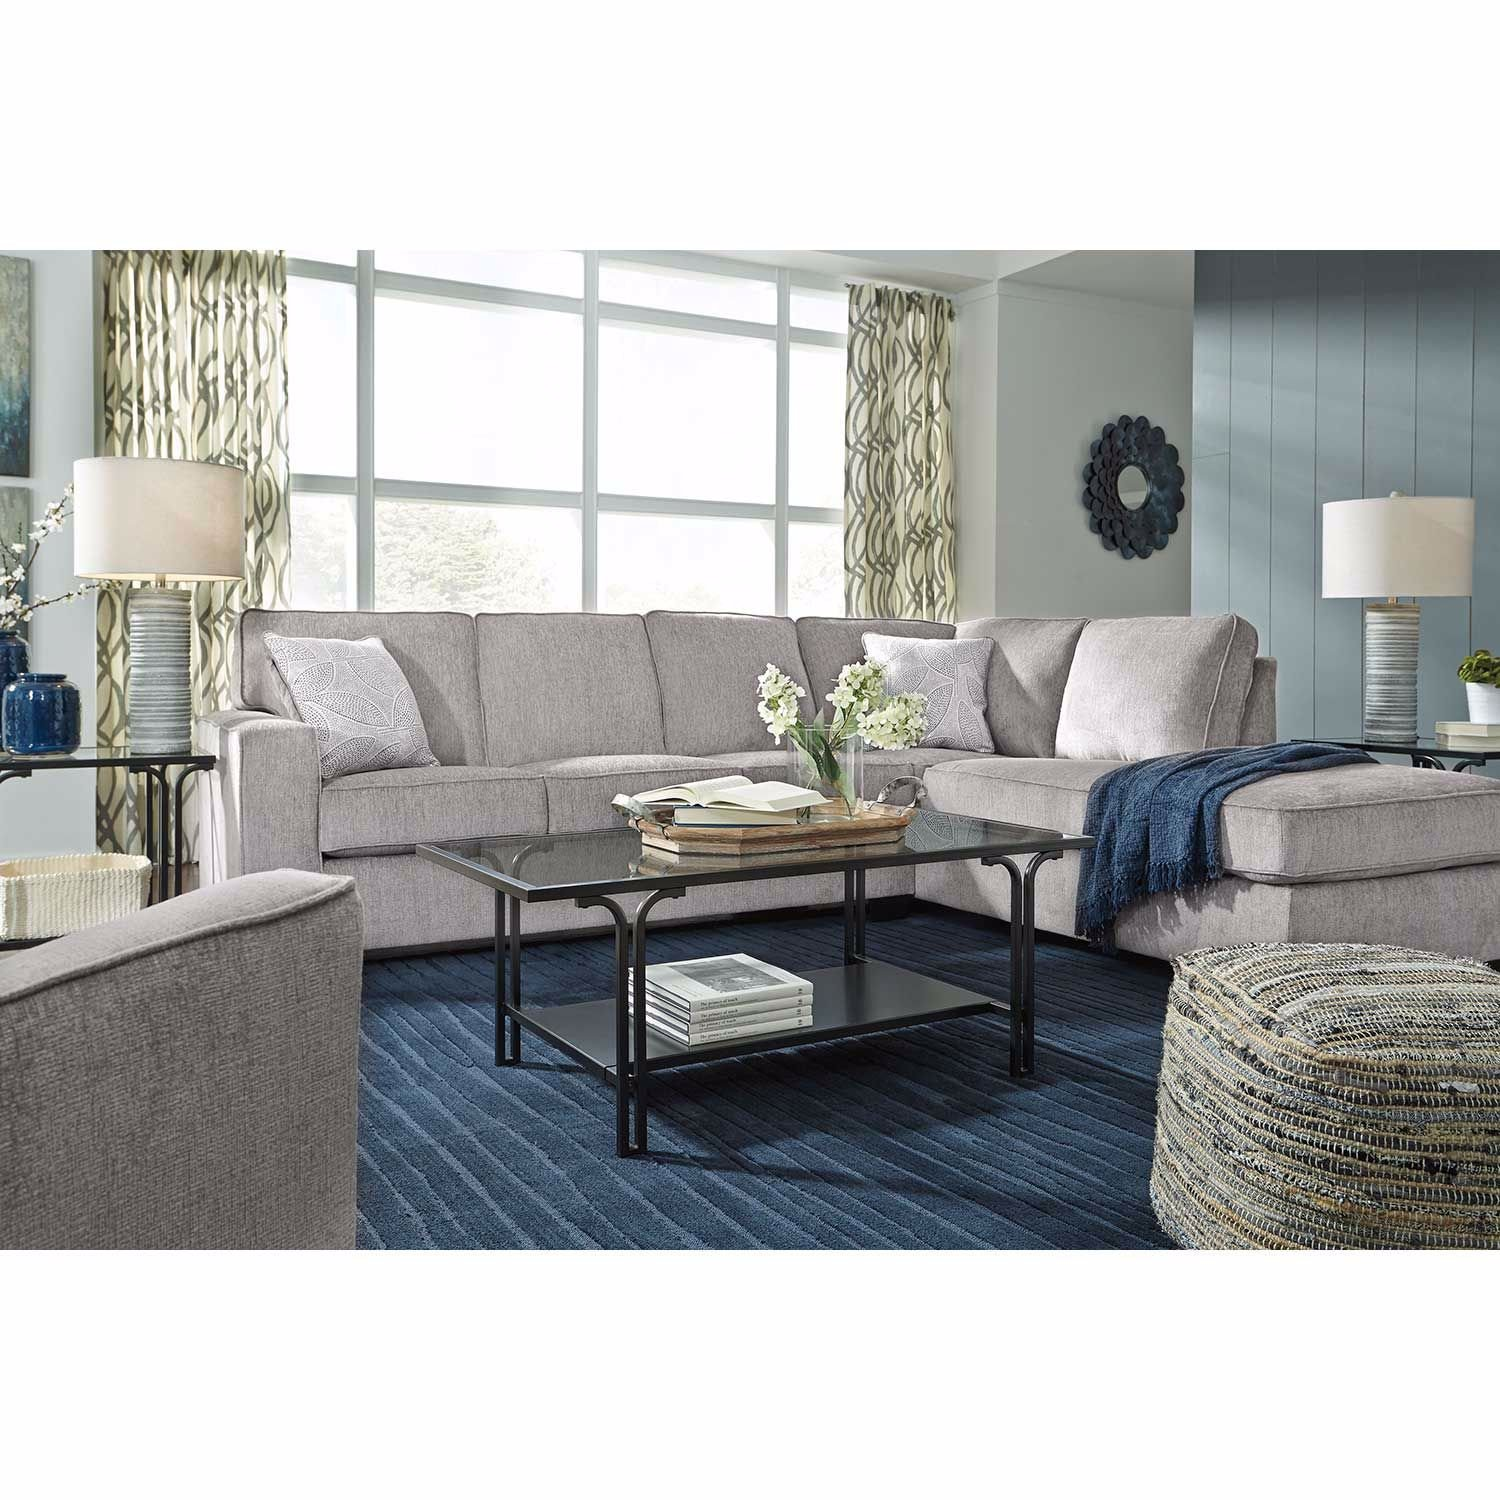 Picture of Altari Alloy 2 PC Sectional with RAF Chaise